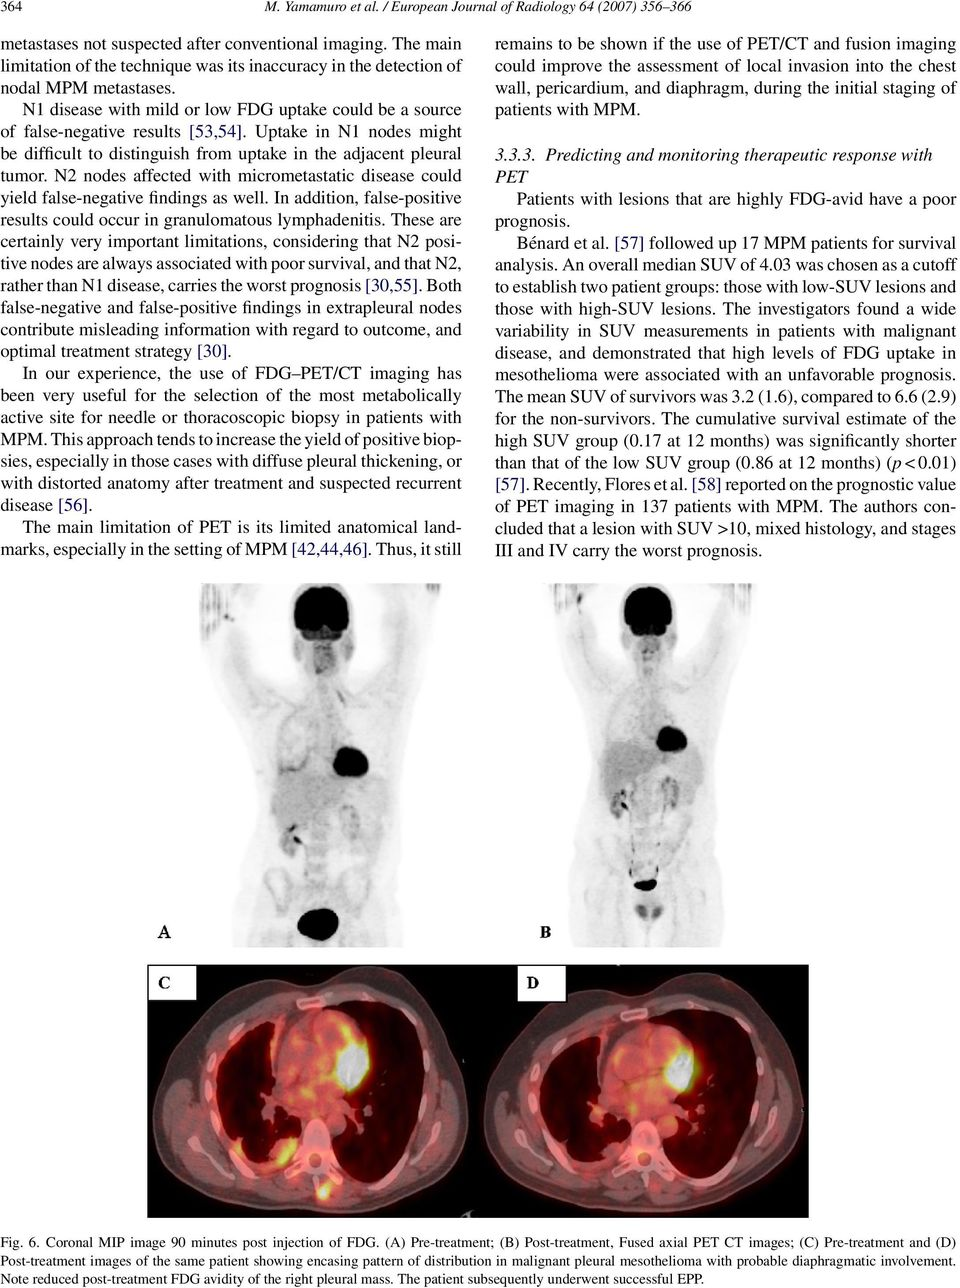 Uptake in N1 nodes might be difficult to distinguish from uptake in the adjacent pleural tumor. N2 nodes affected with micrometastatic disease could yield false-negative findings as well.